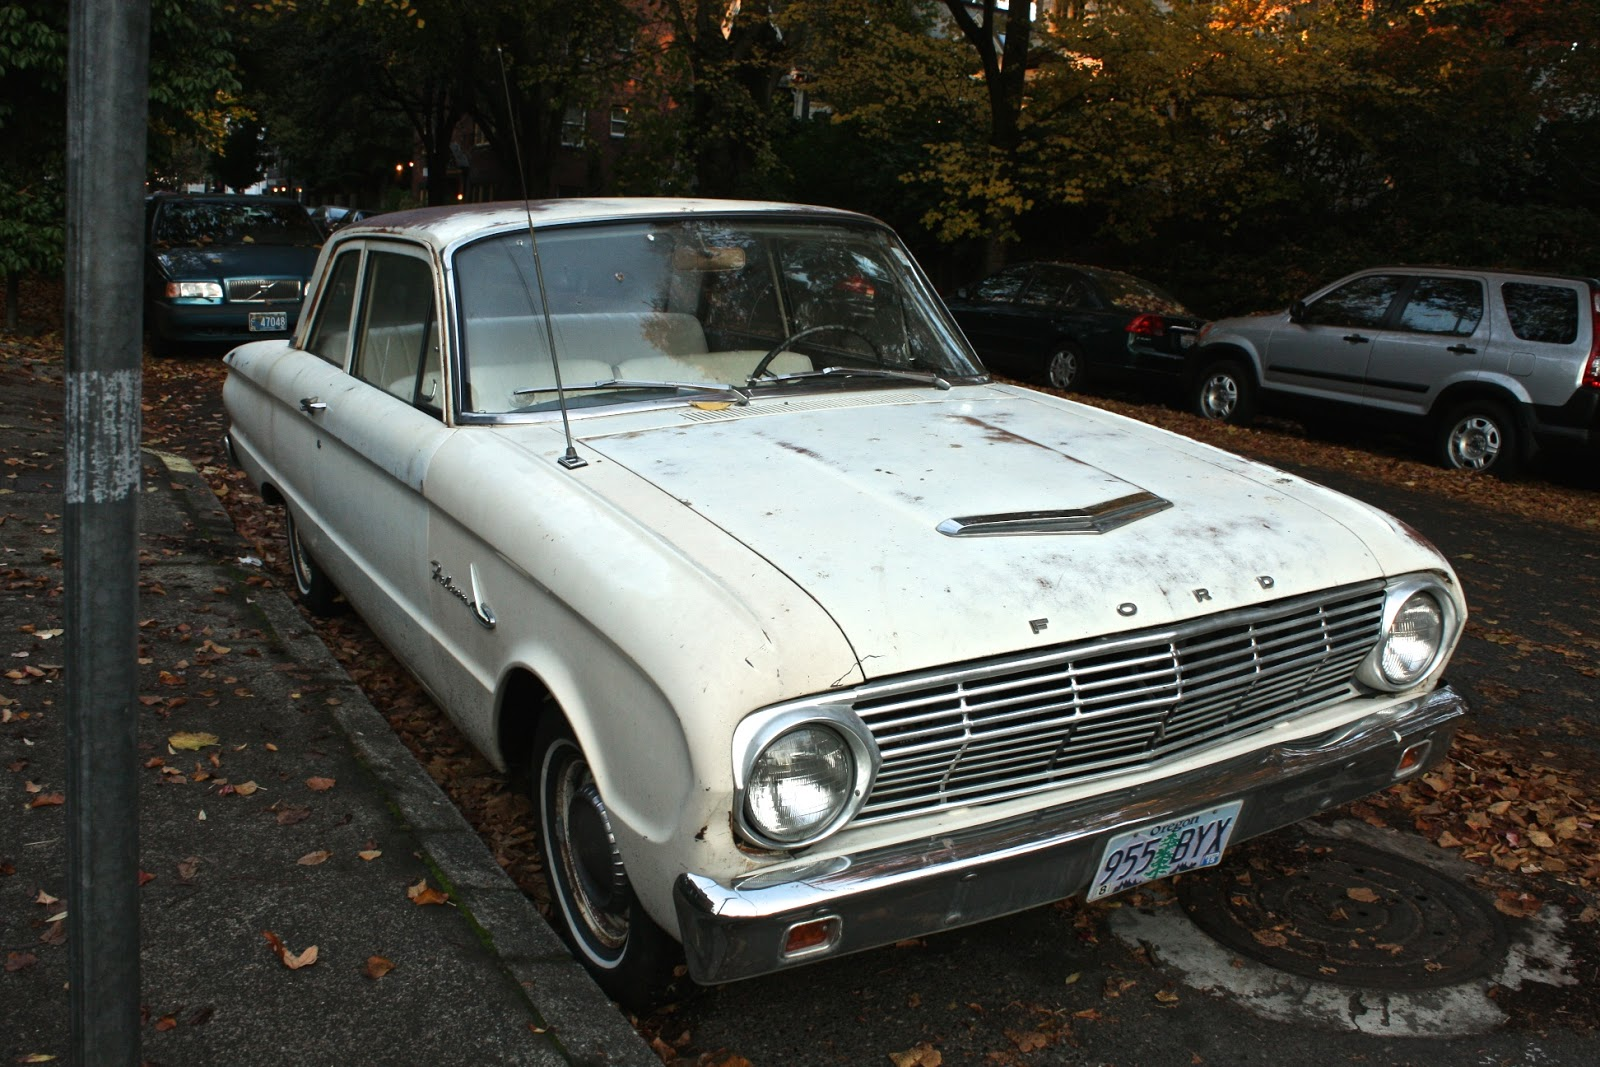 1963 Ford Falcon two-door